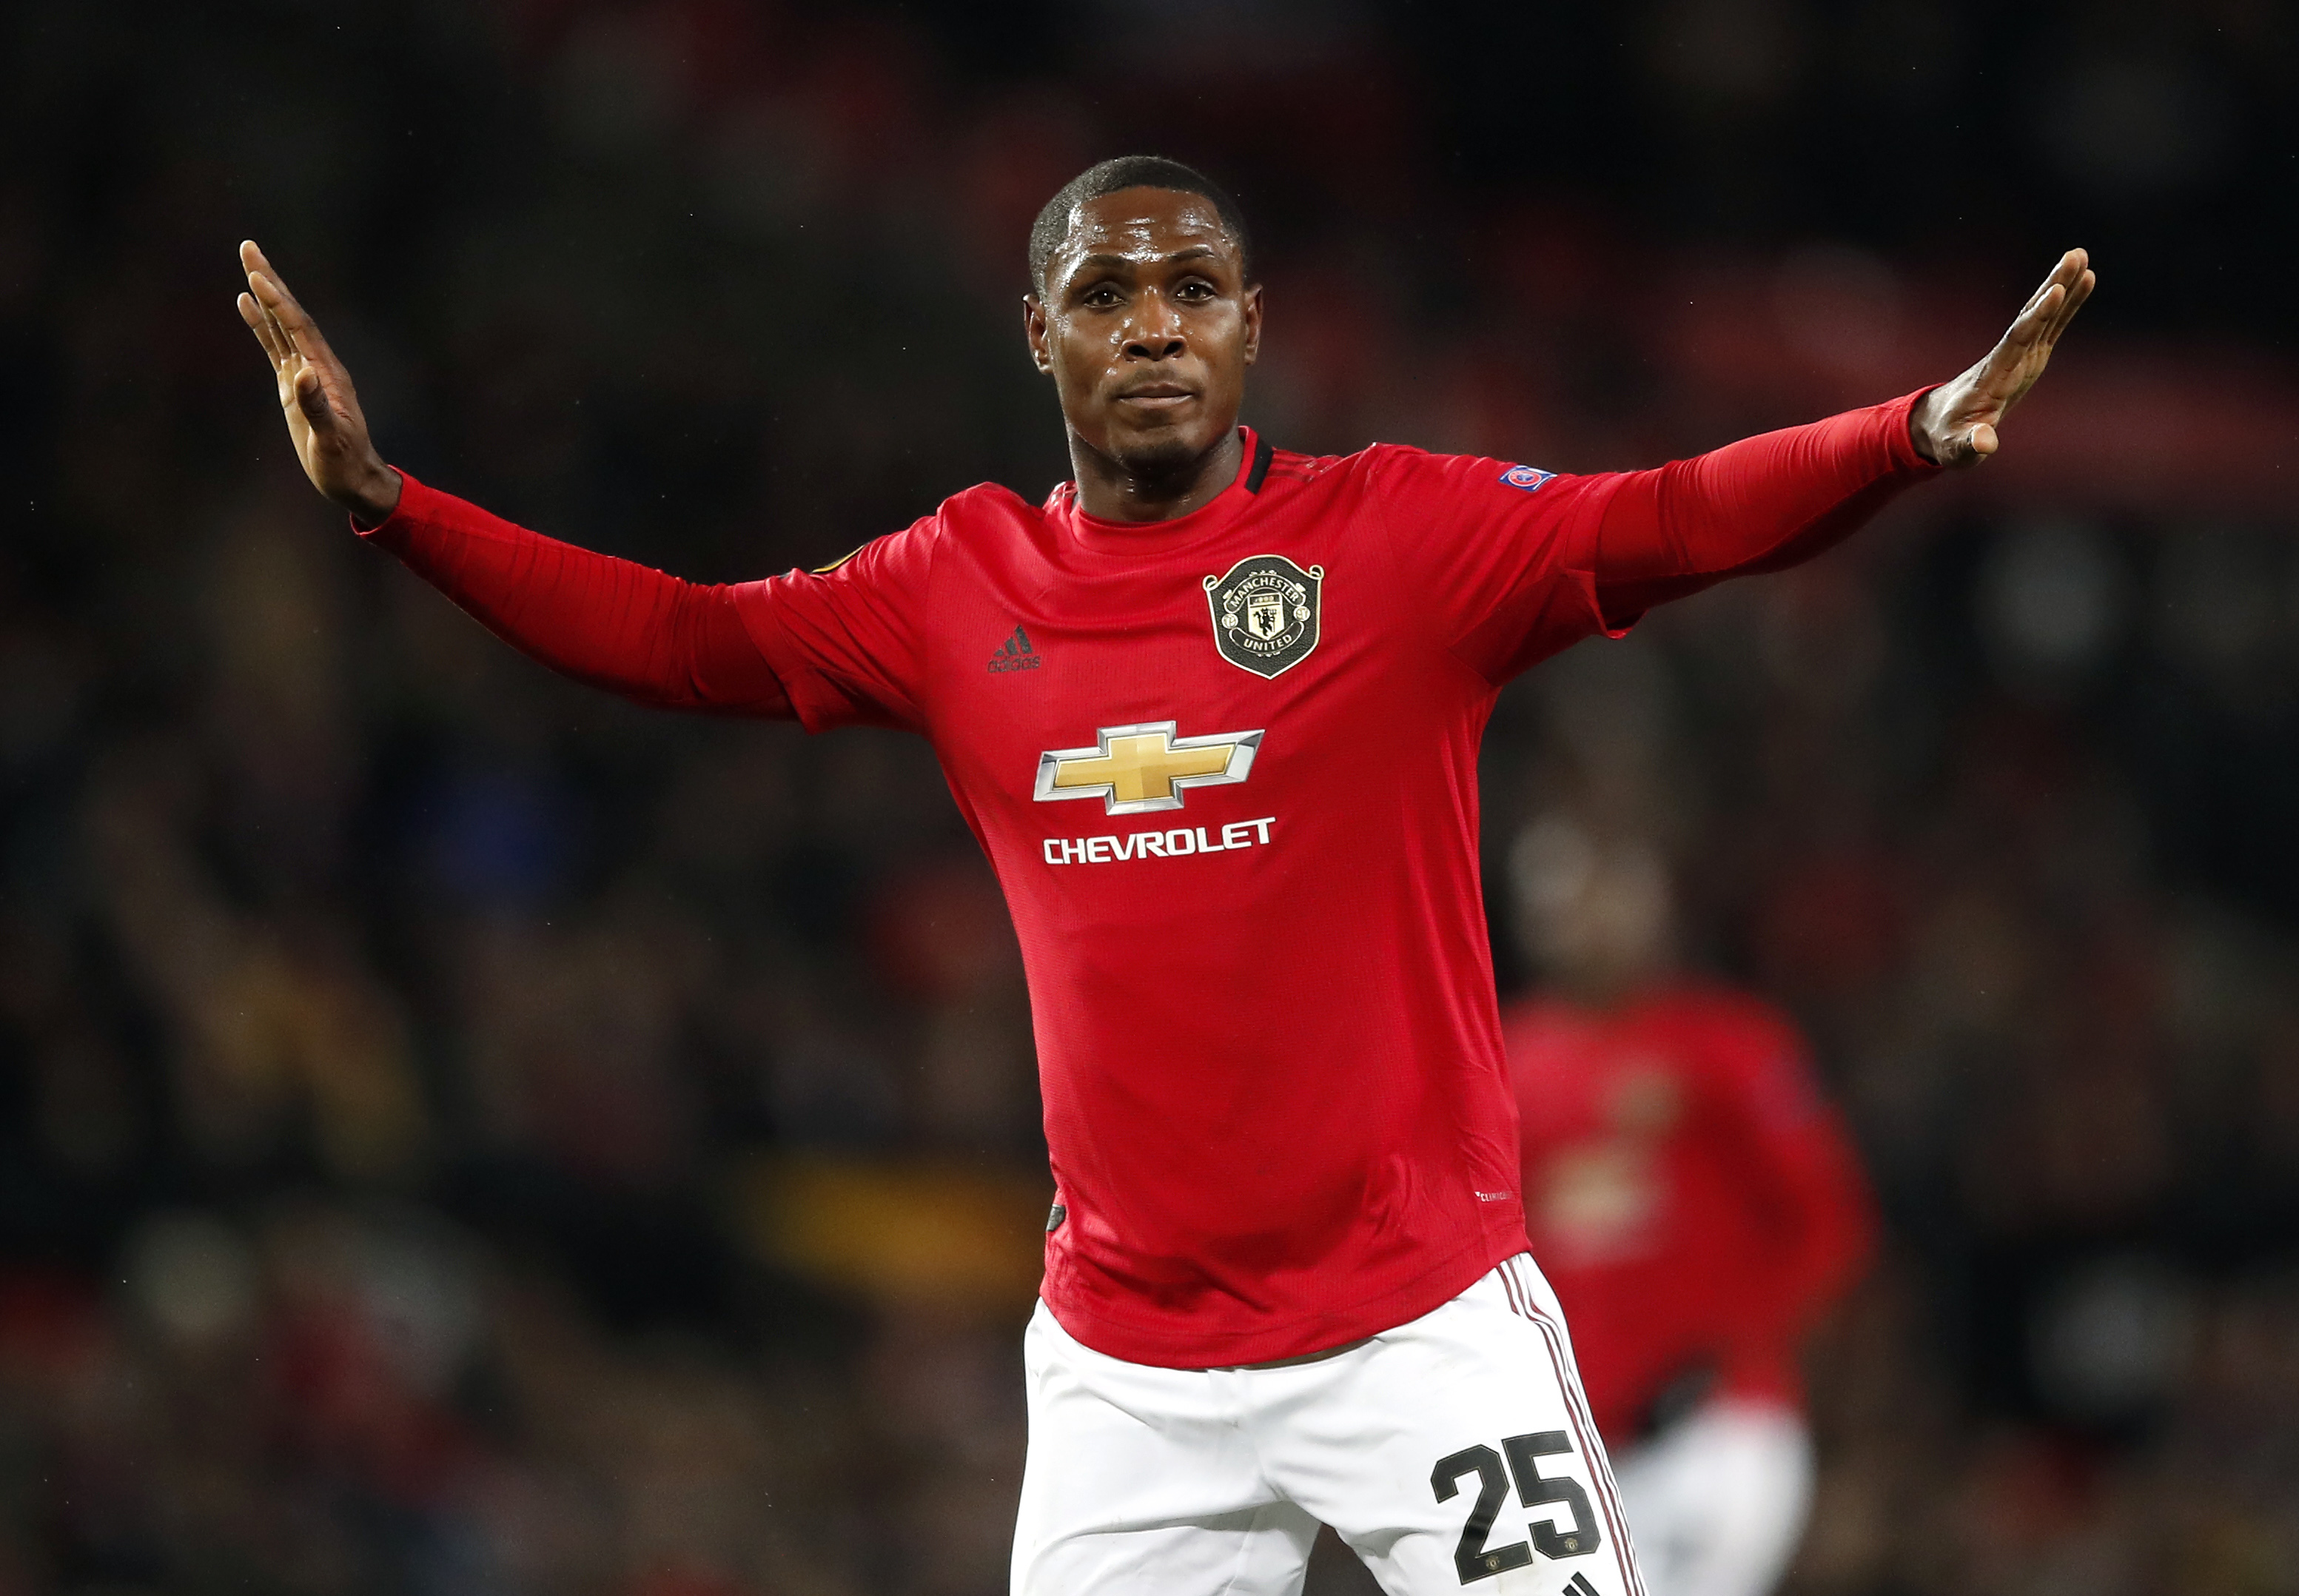 WATCH: Ighalo's first Man United goal